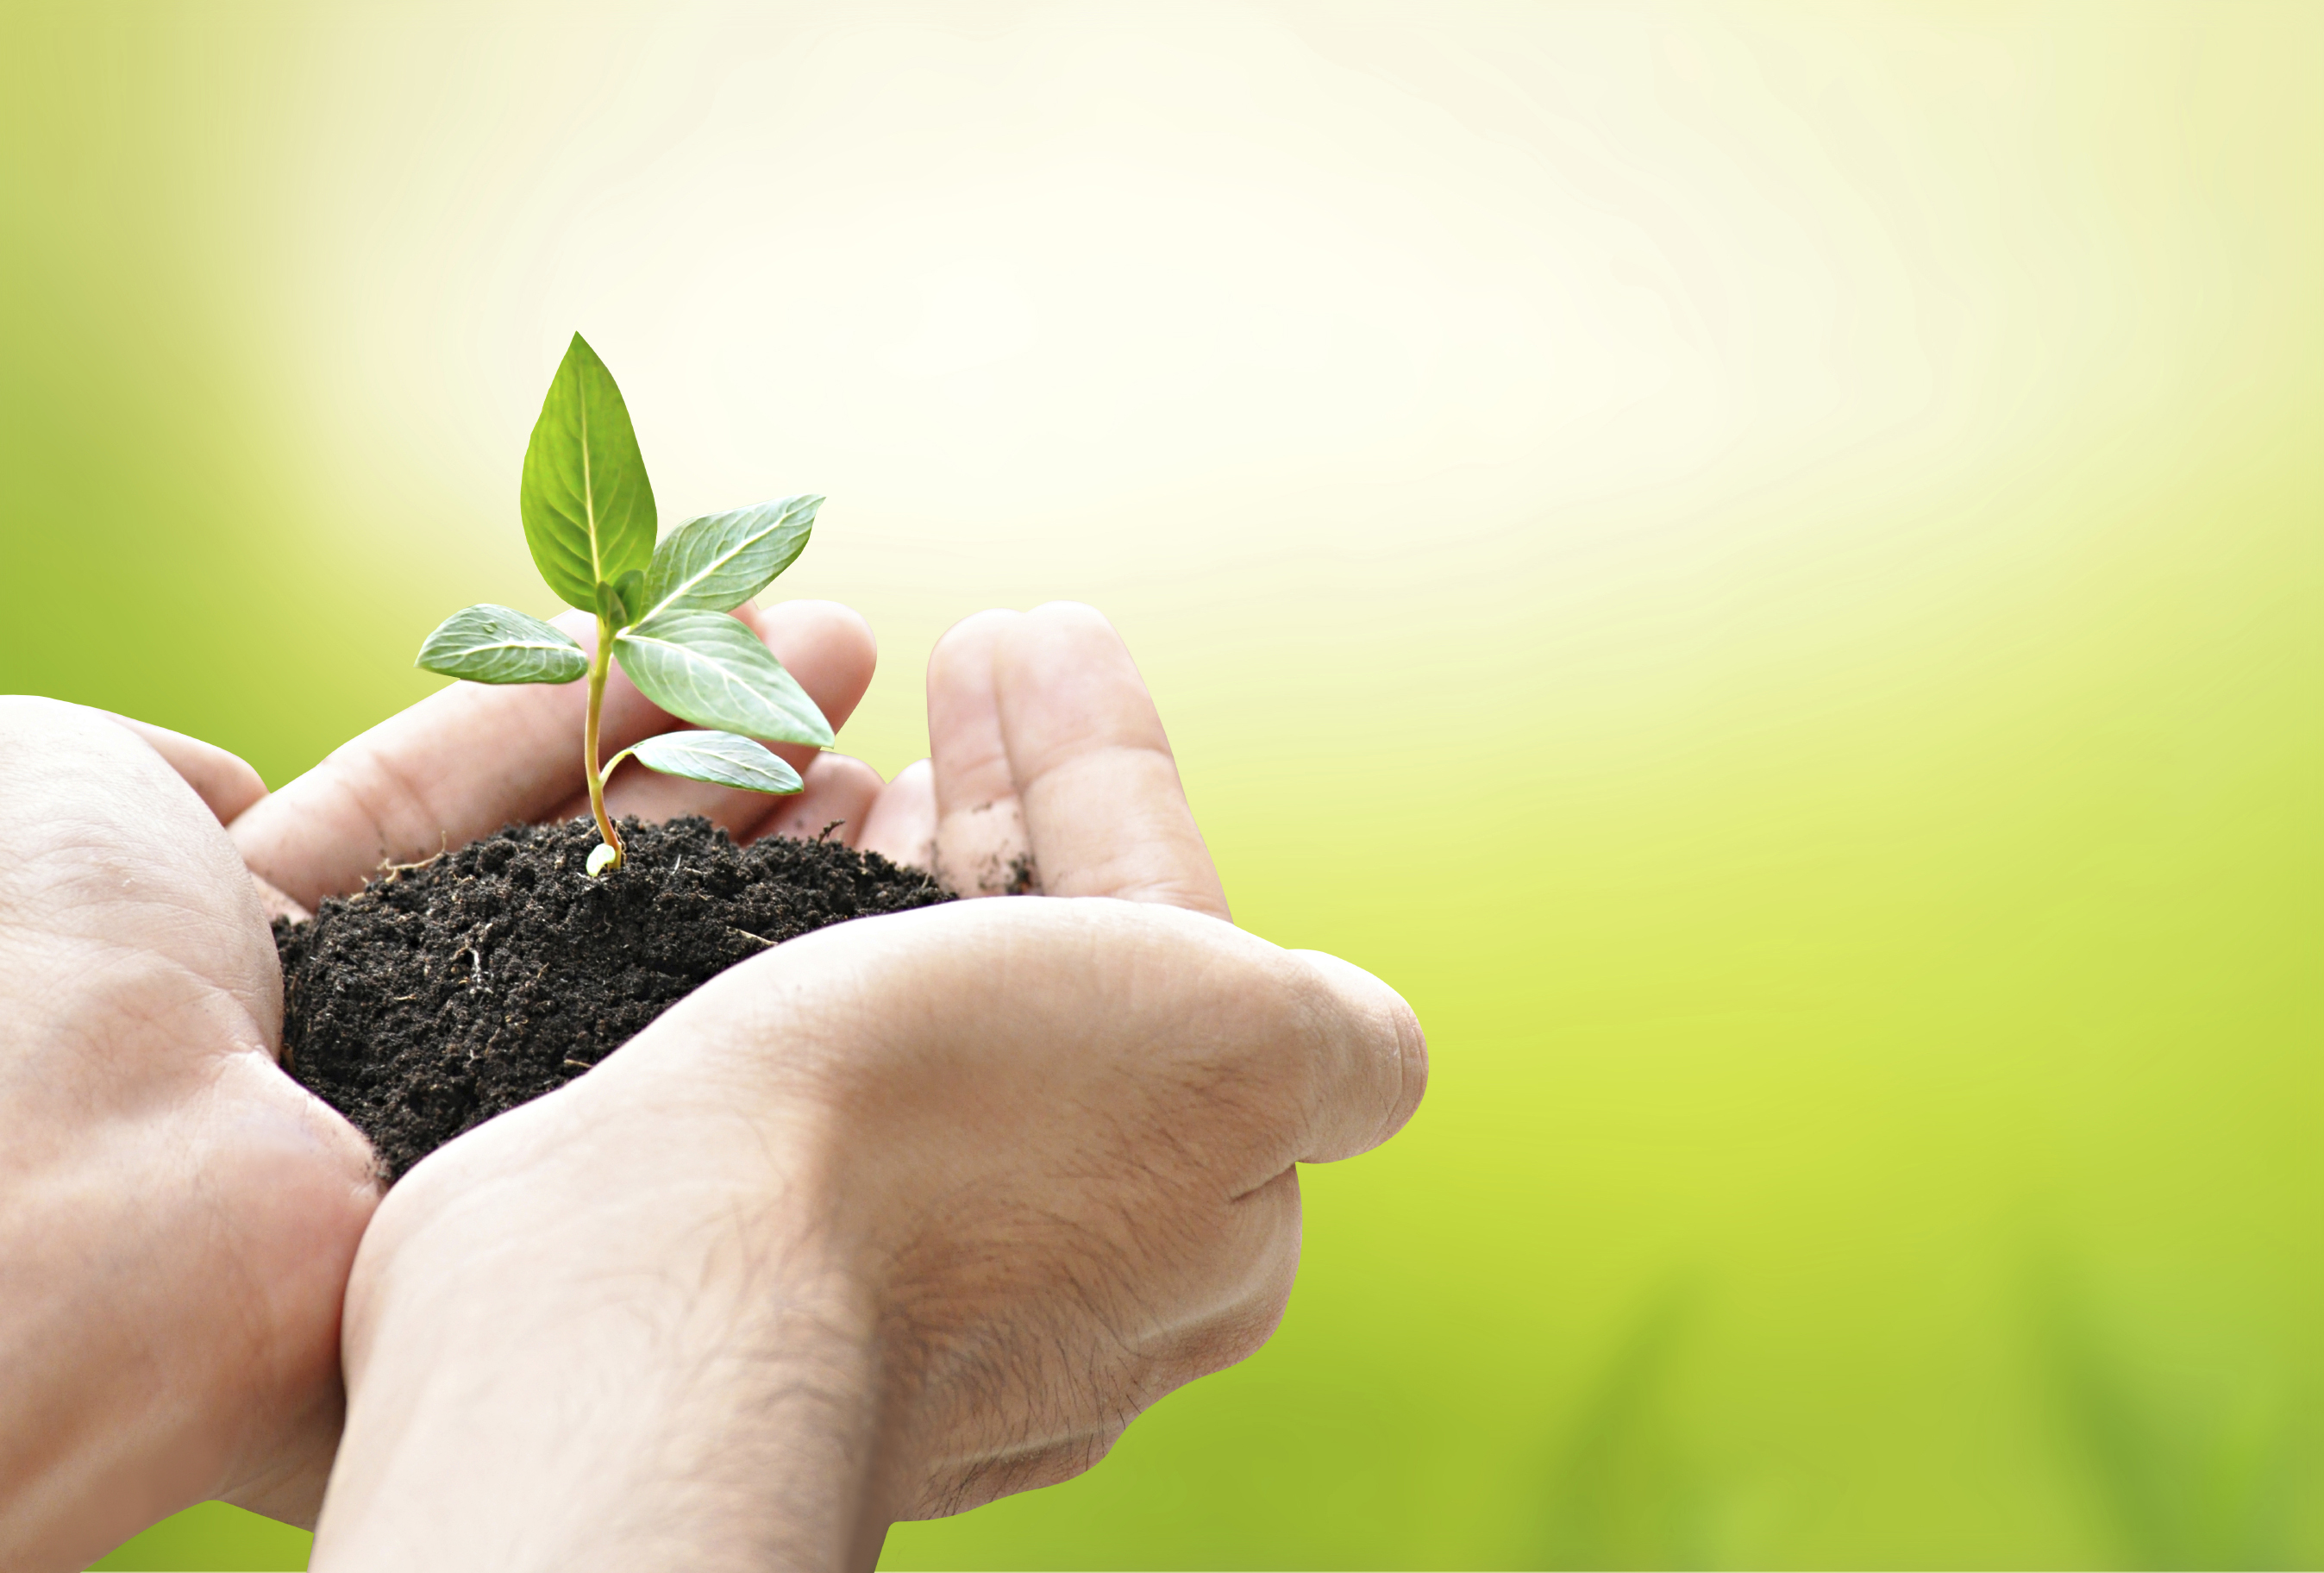 give to grow.